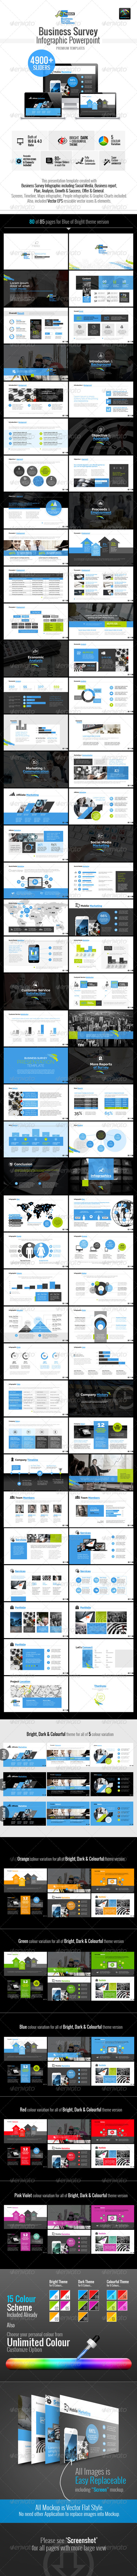 GraphicRiver Business Survey Infographic Template 7193775